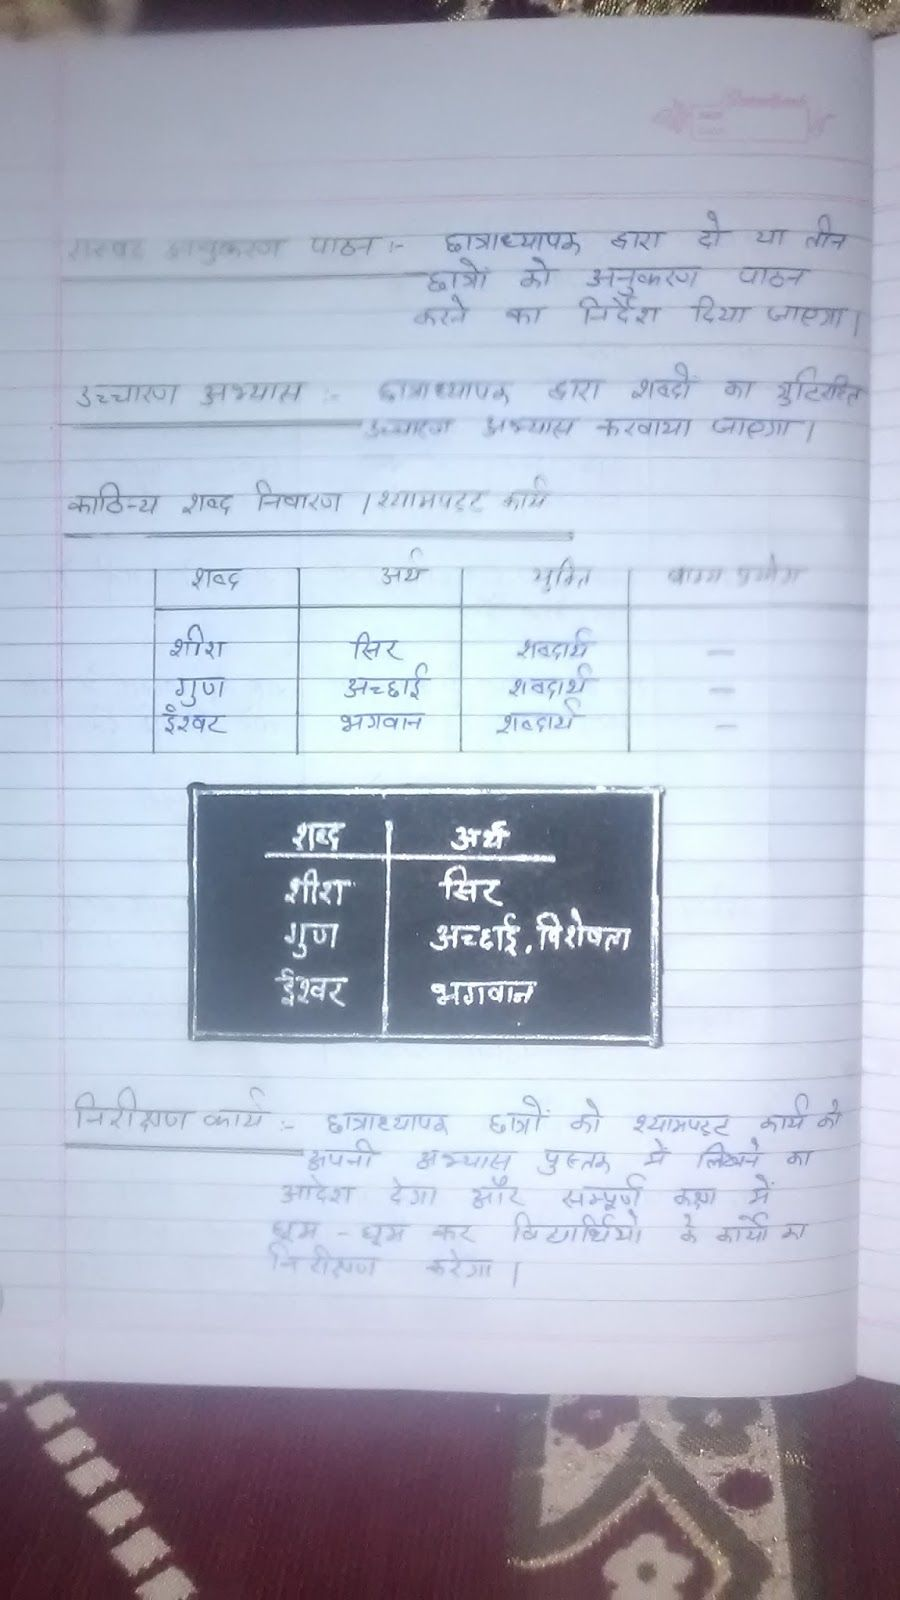 Btc lesson plan hindi for primary class make lesson plan pinterest btc lesson plan hindi for primary class gamestrikefo Images